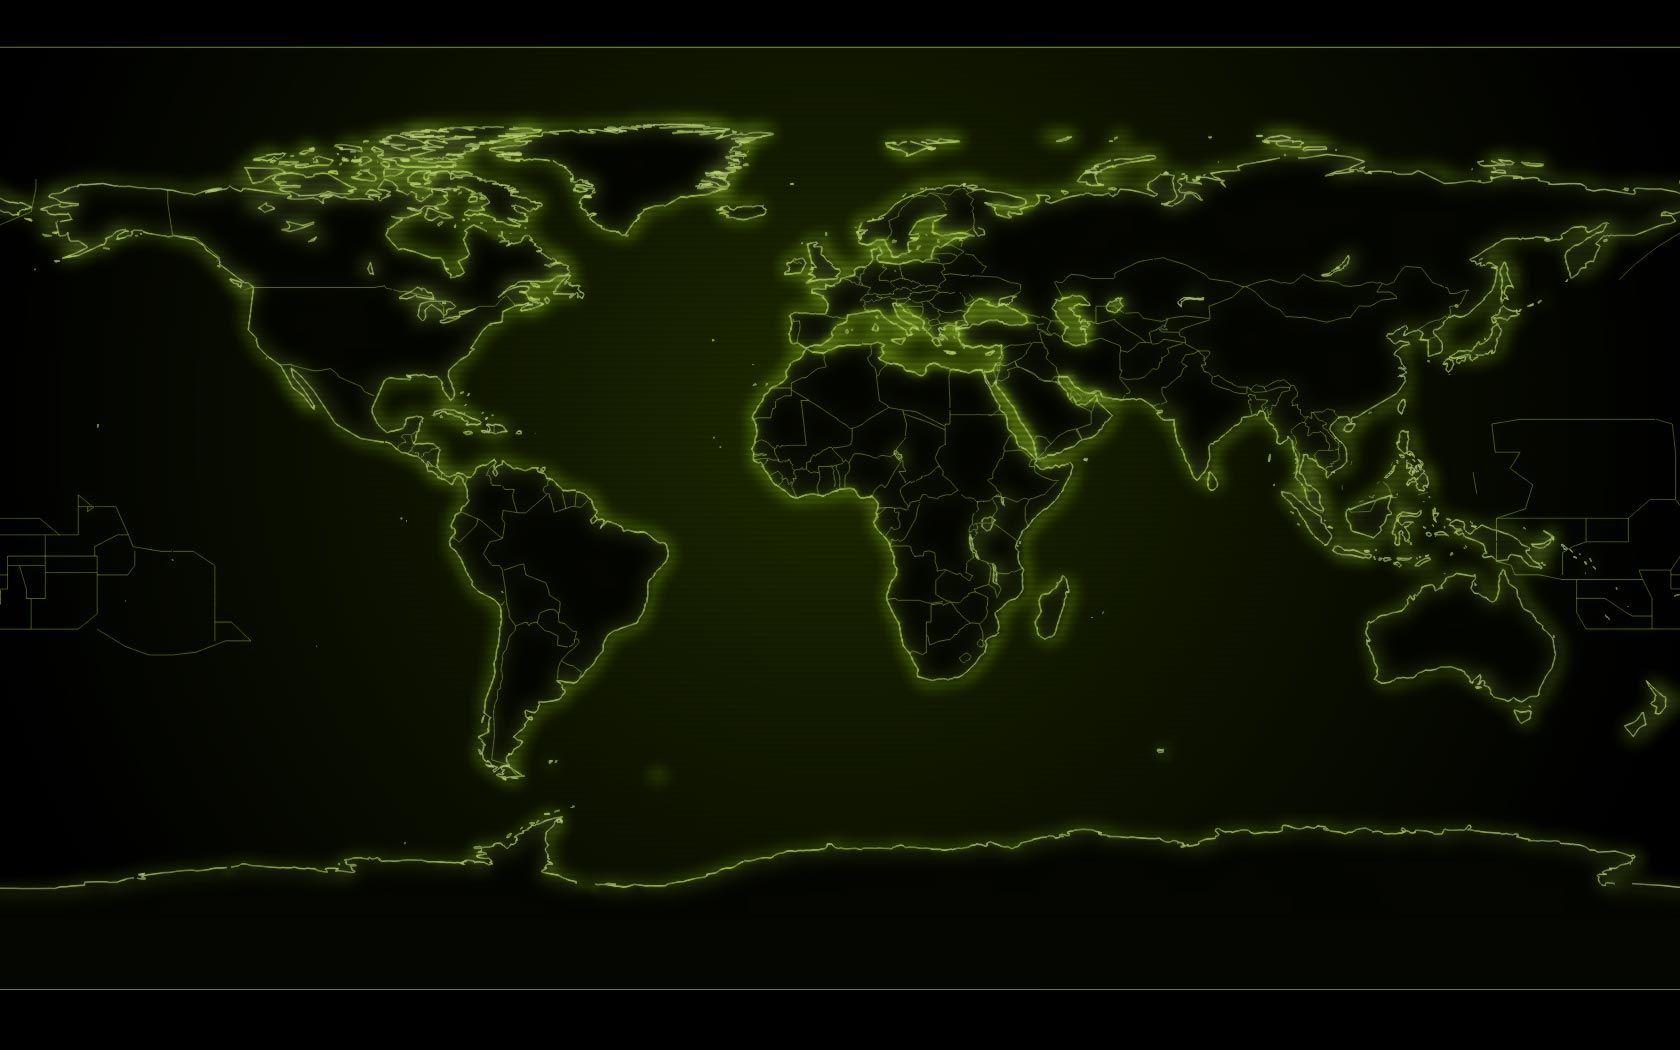 Earth Map Wallpapers 1680x1050